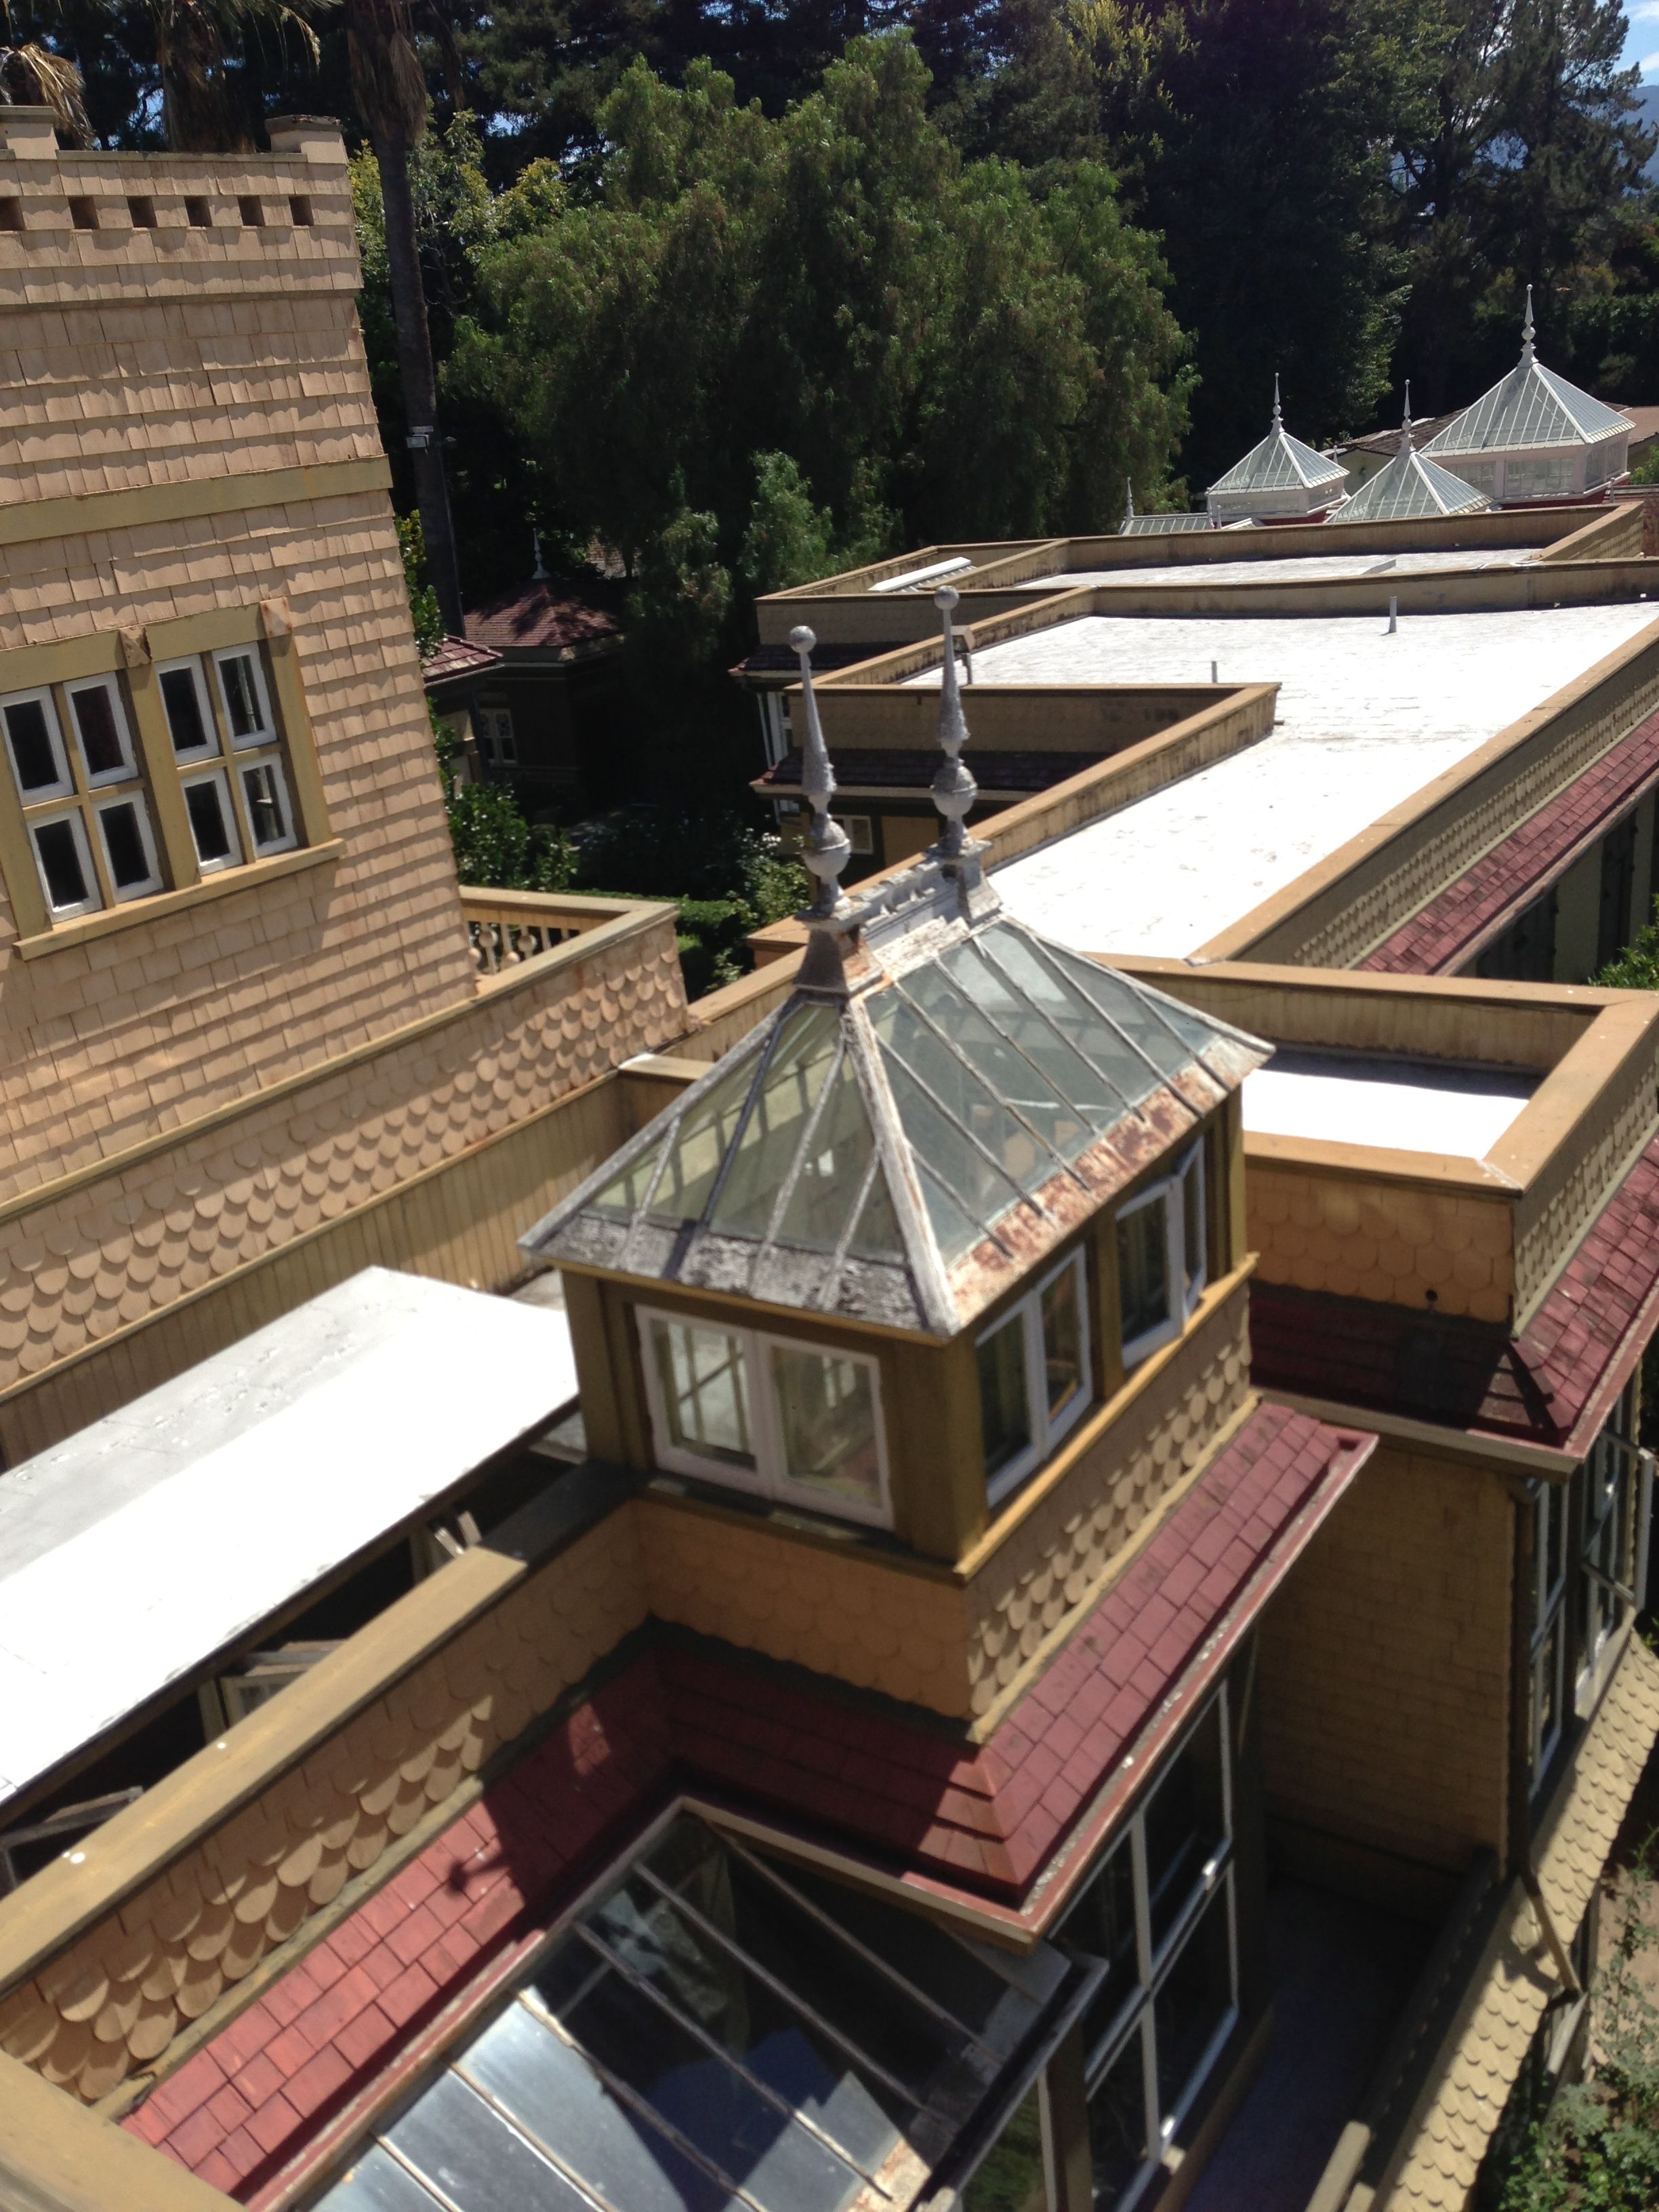 3rd floor Winchester Mystery House 9 1 13